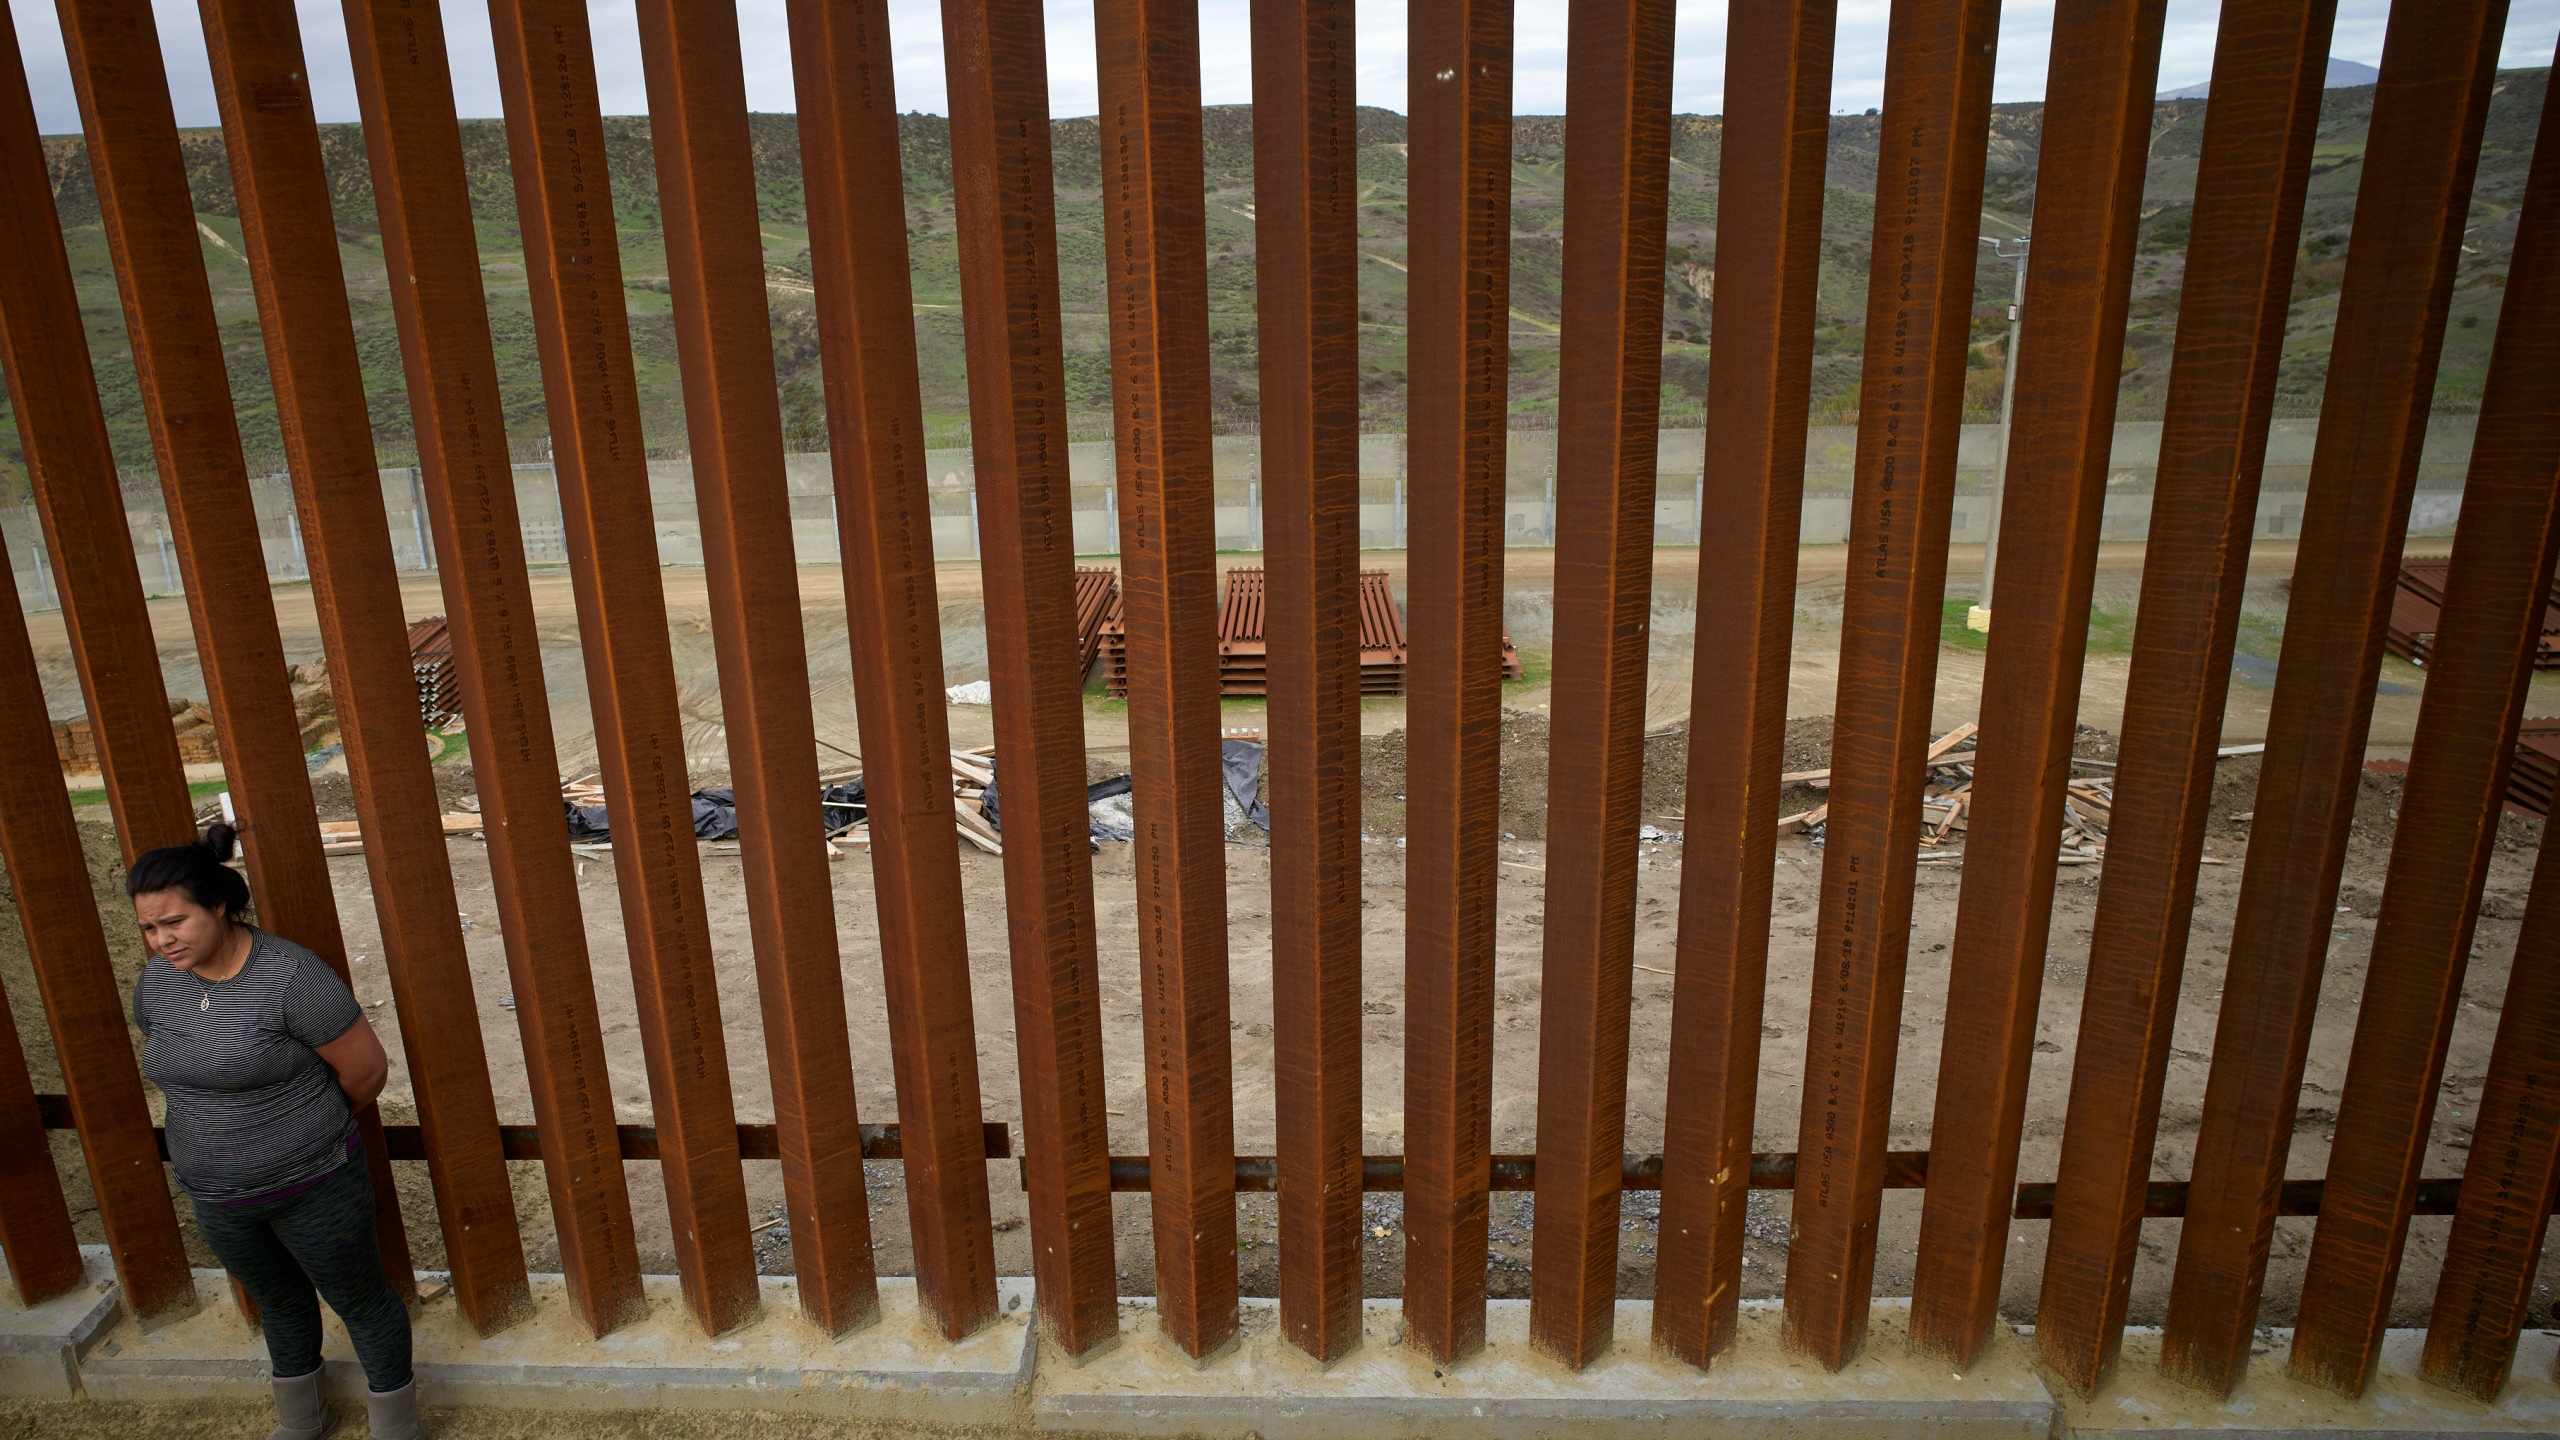 Border_Wall_View_from_Mexico_44097-159532.jpg09885409